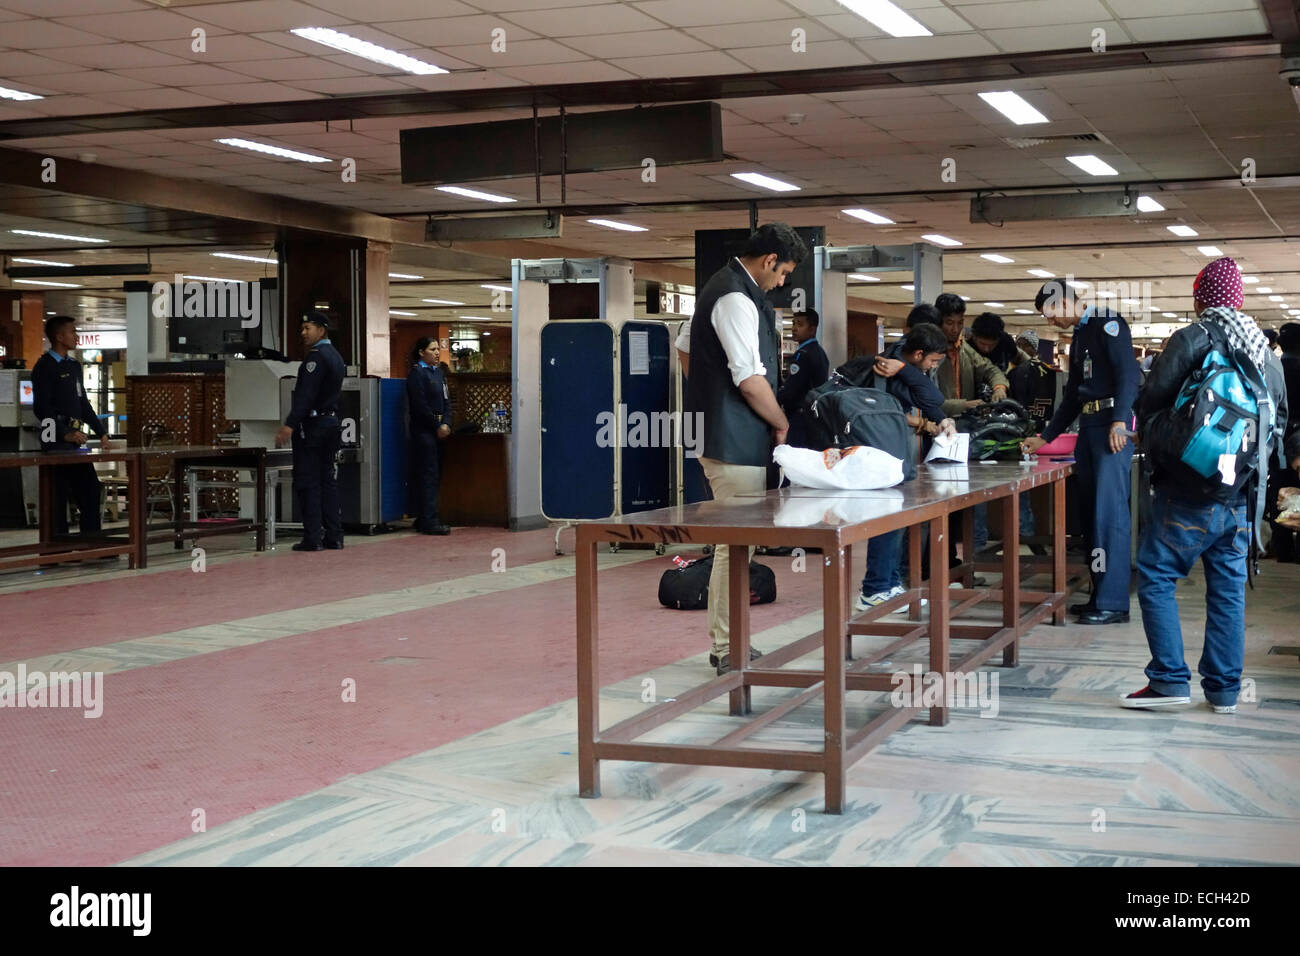 http://c8.alamy.com/comp/ECH42D/security-check-in-tribhuvan-international-airport-in-kathmandu-nepal-ECH42D.jpg